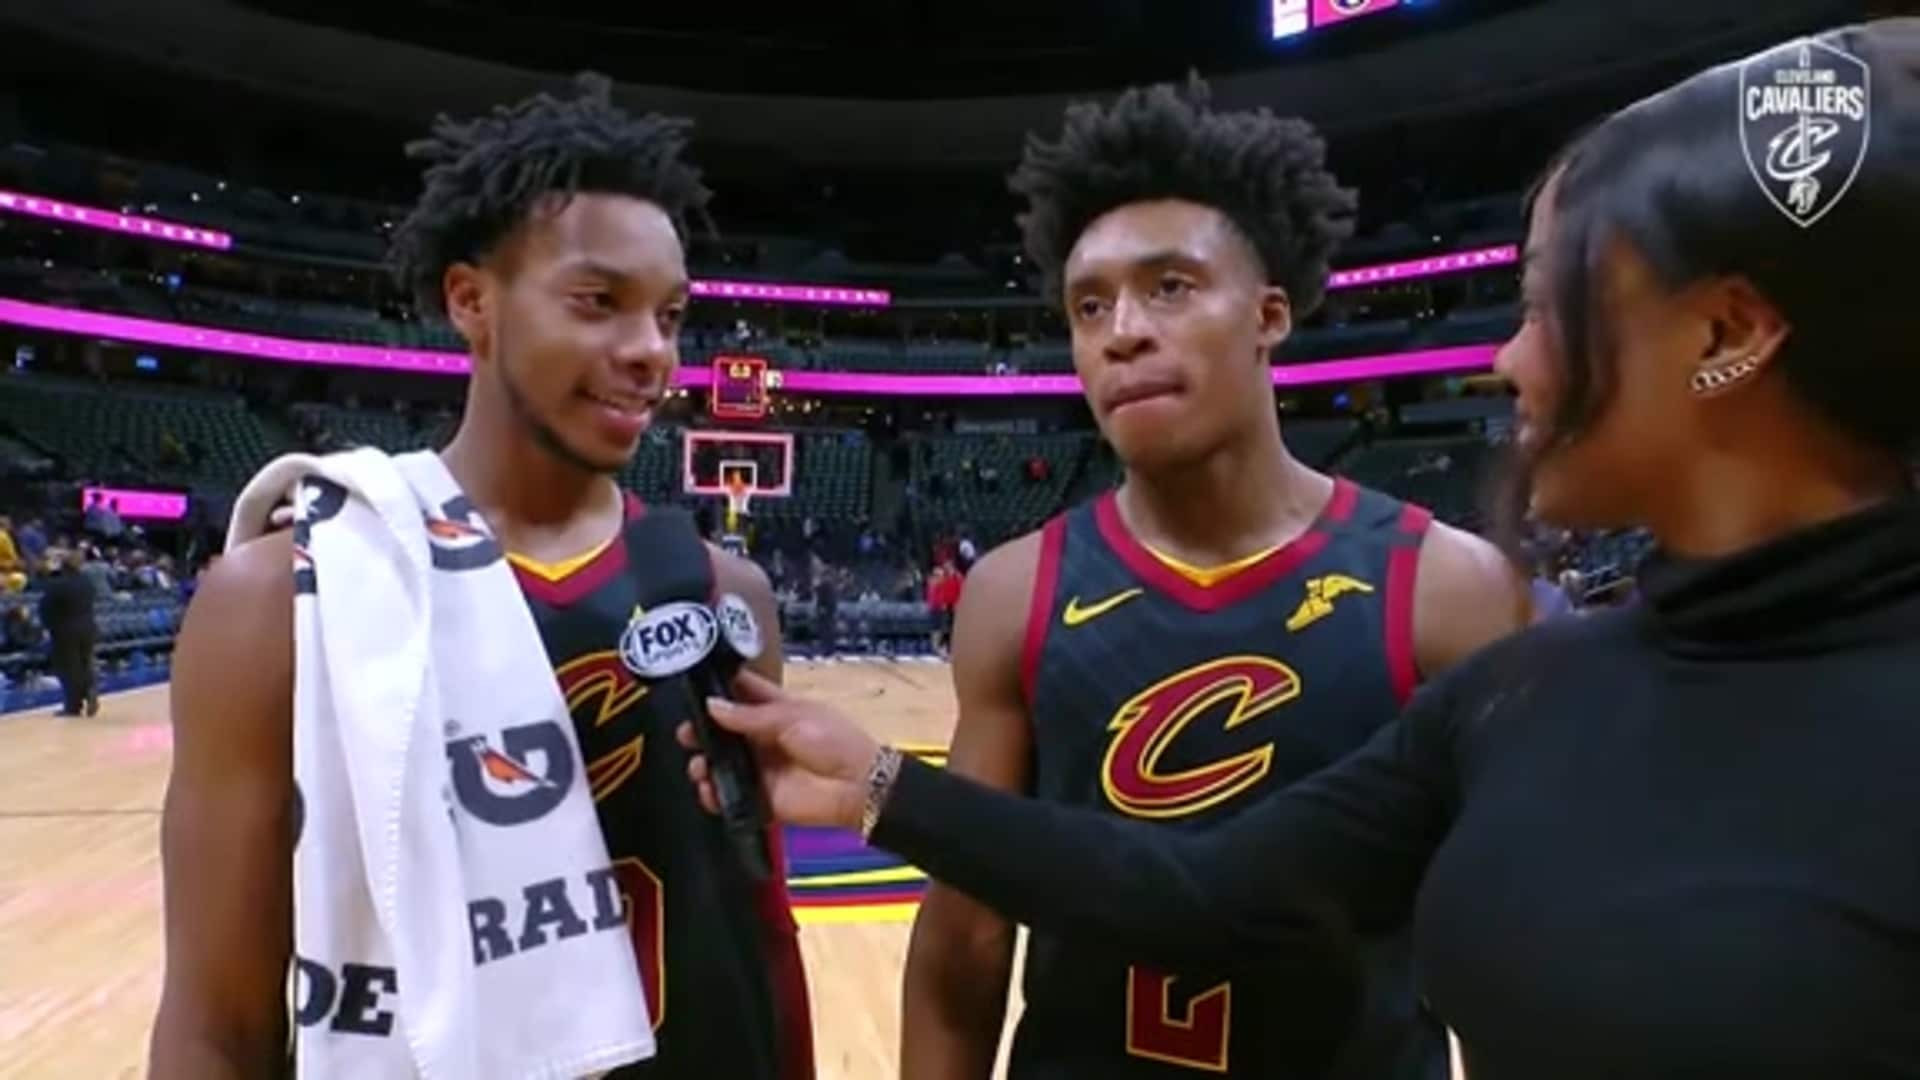 Cavs at Nuggets On-Court Postgame: Collin Sexton and Darius Garland